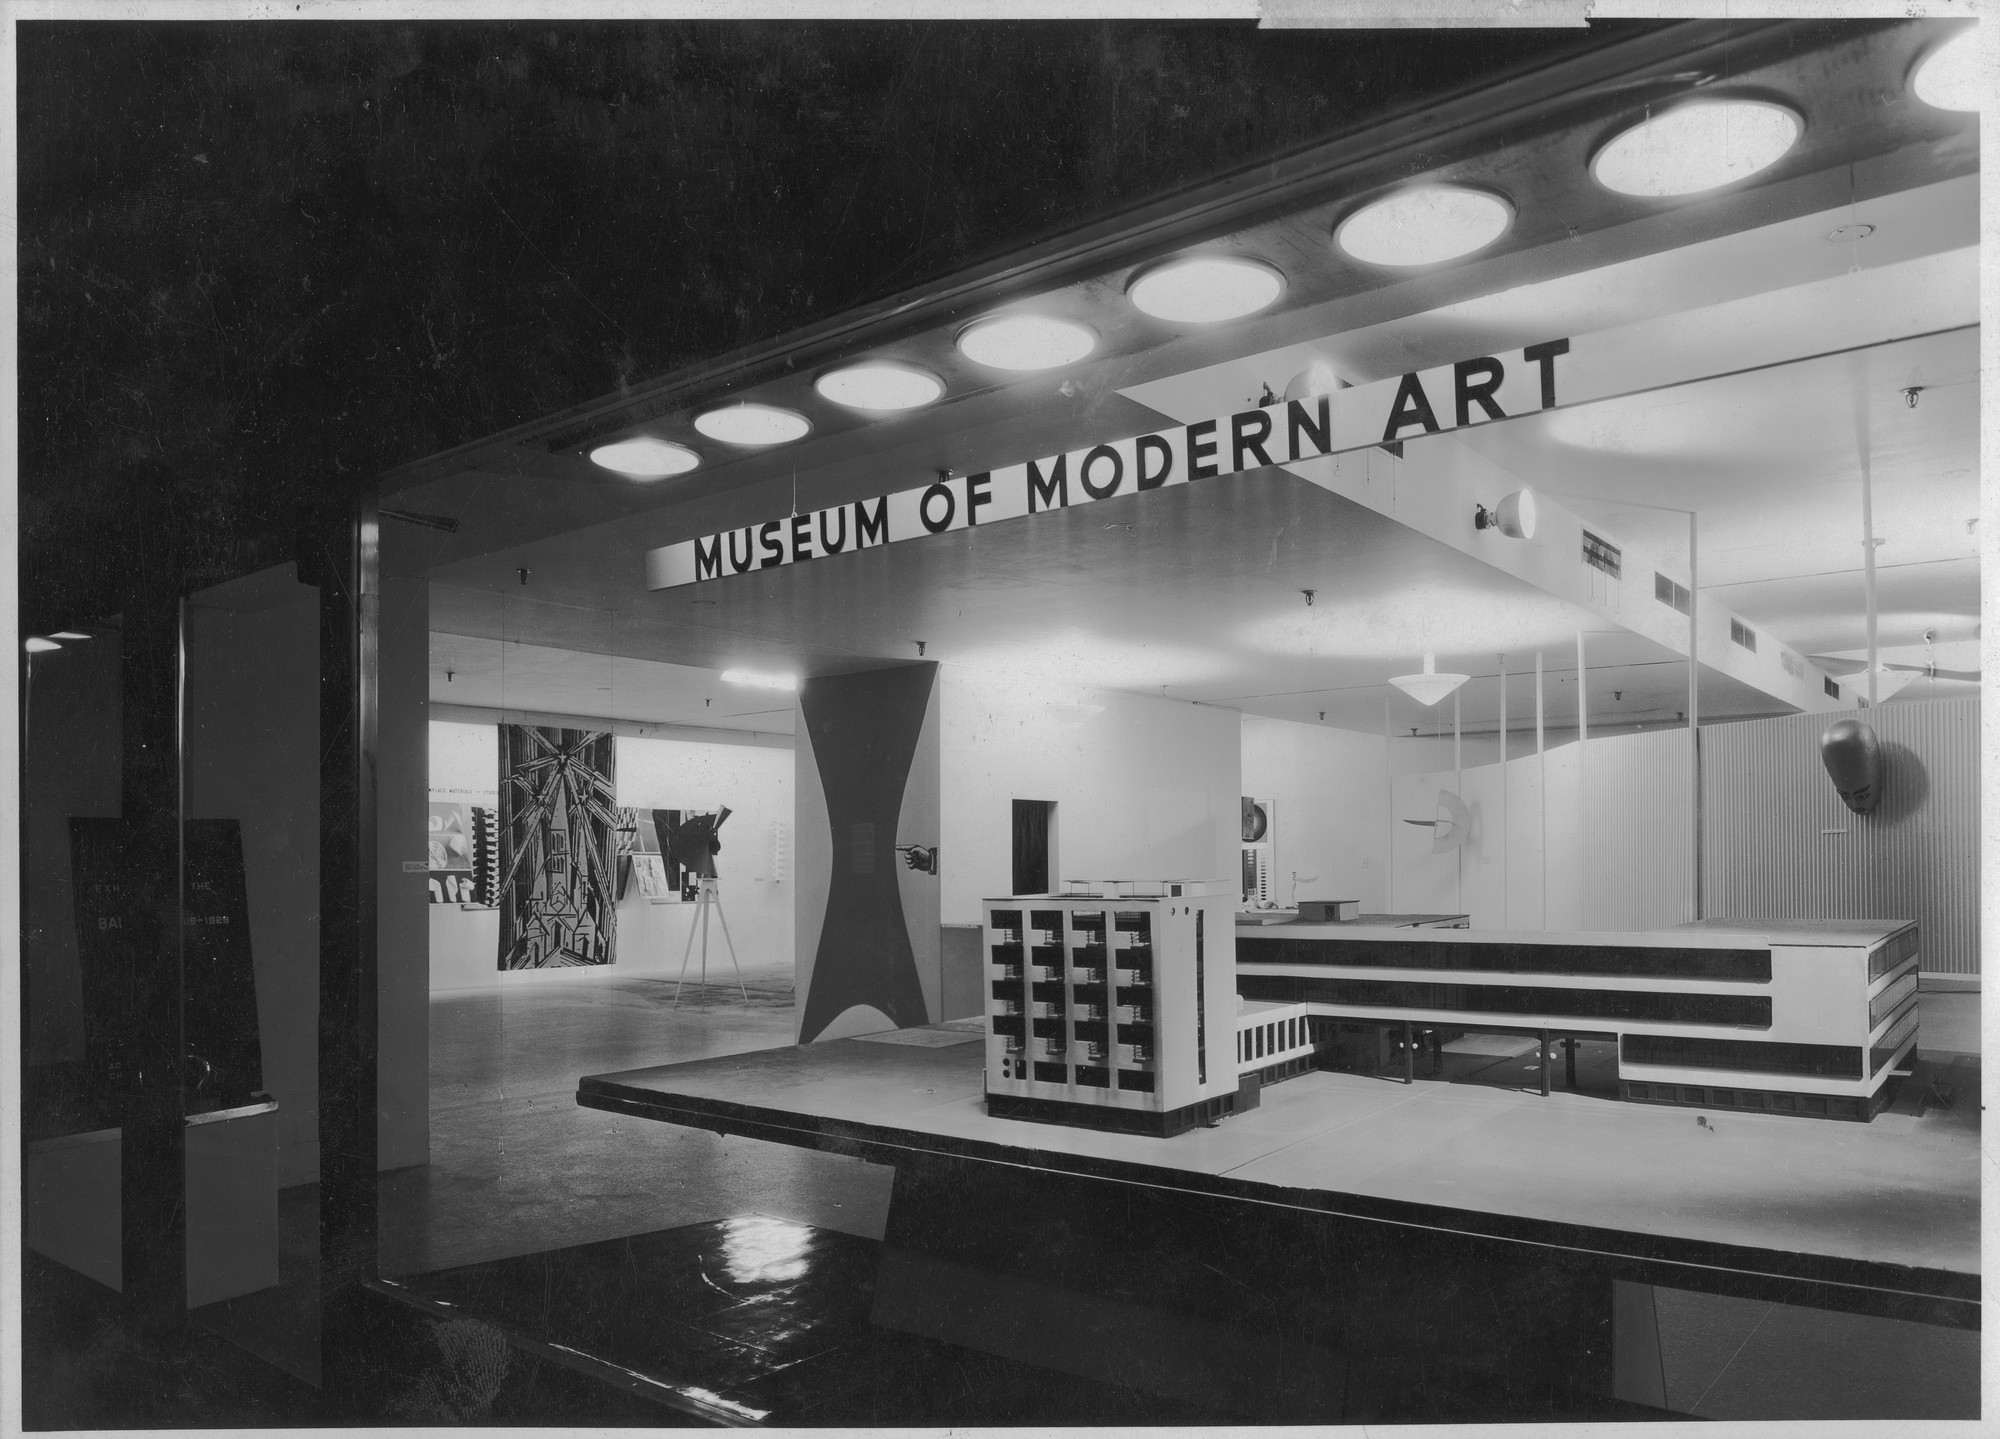 "Installation view of the exhibition, ""Bauhaus: 1919-1928"" December 7, 1938–January 30, 1939. Photographic Archive. The Museum of Modern Art Archives, New York. IN82.7. Photograph by Soichi Sunami."